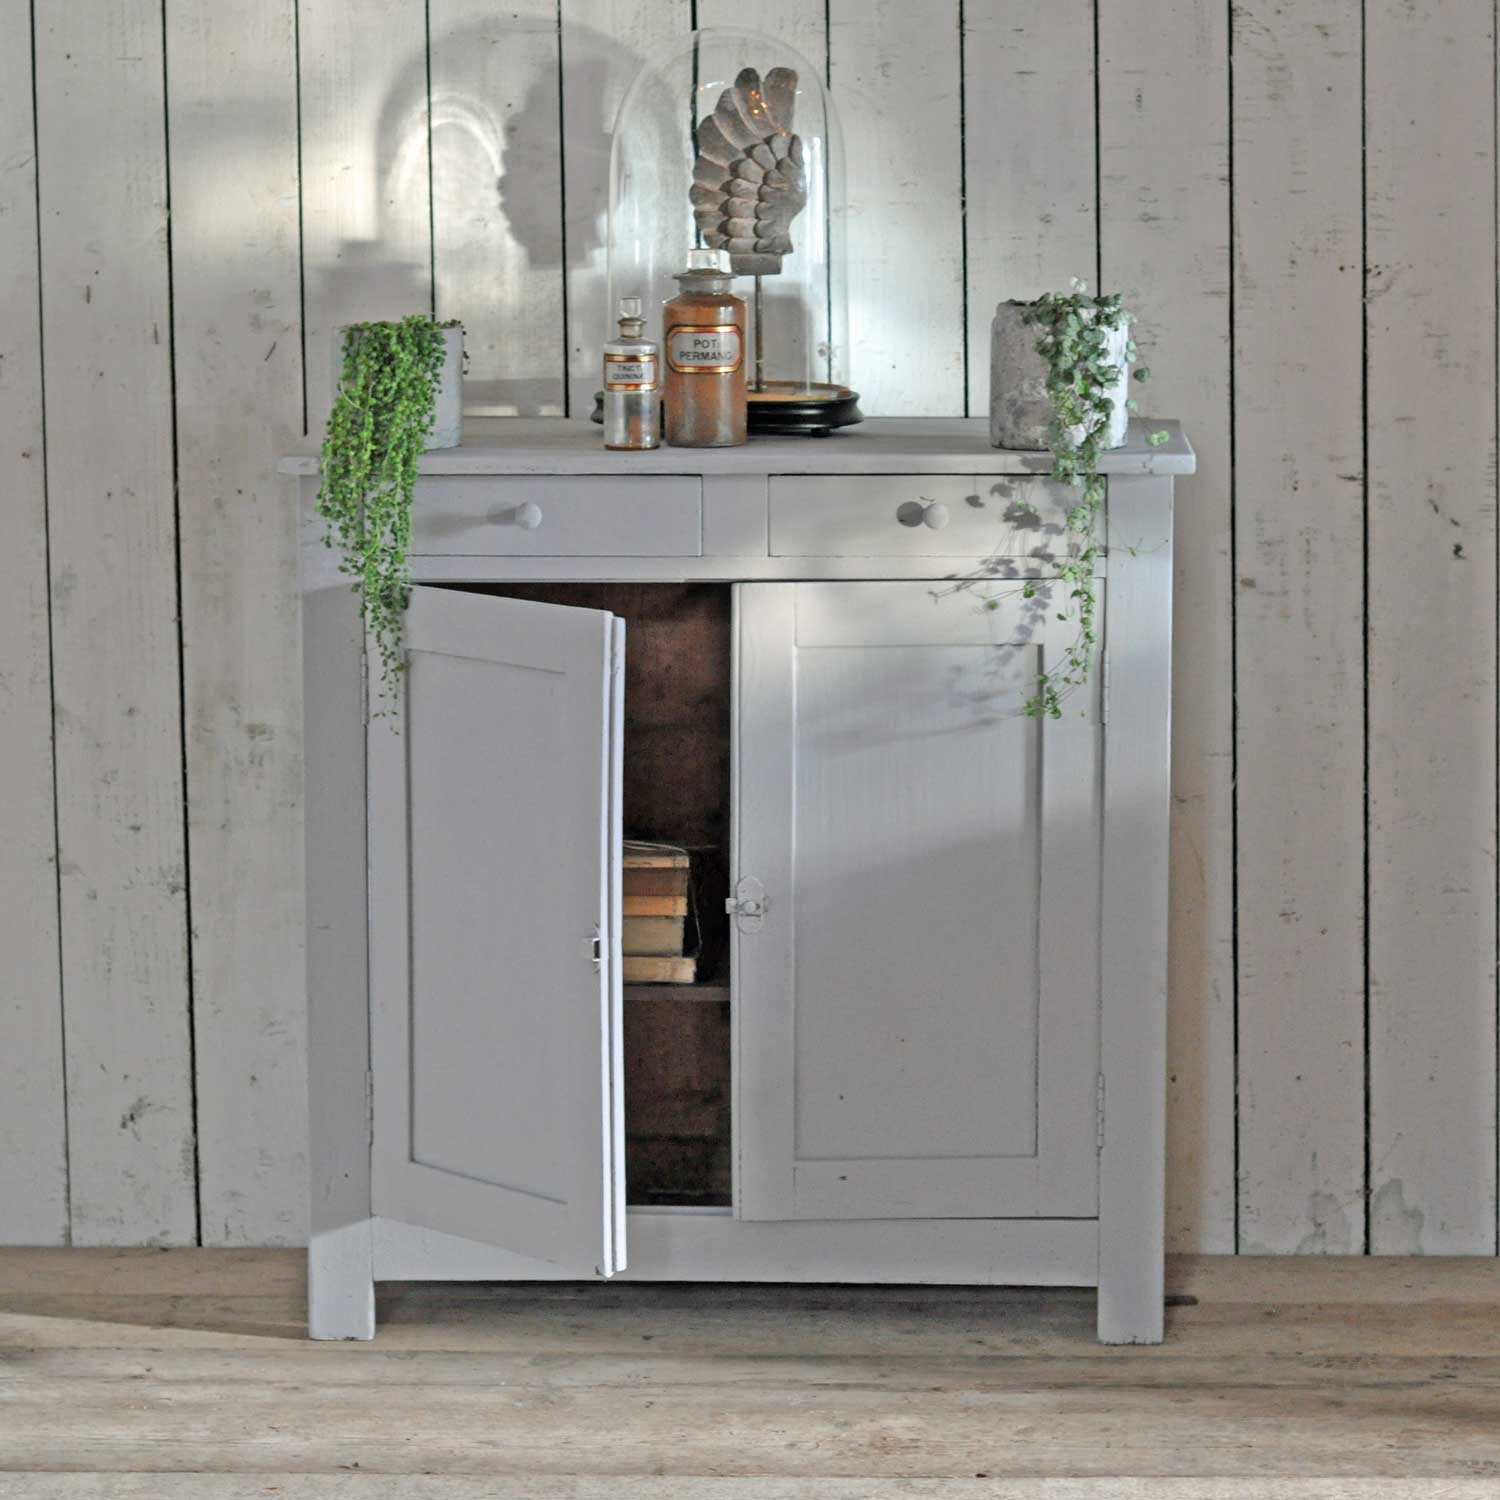 Vintage Two Door Amp Drawer Cabinet With Hand Painted Pale Grey Paintwork